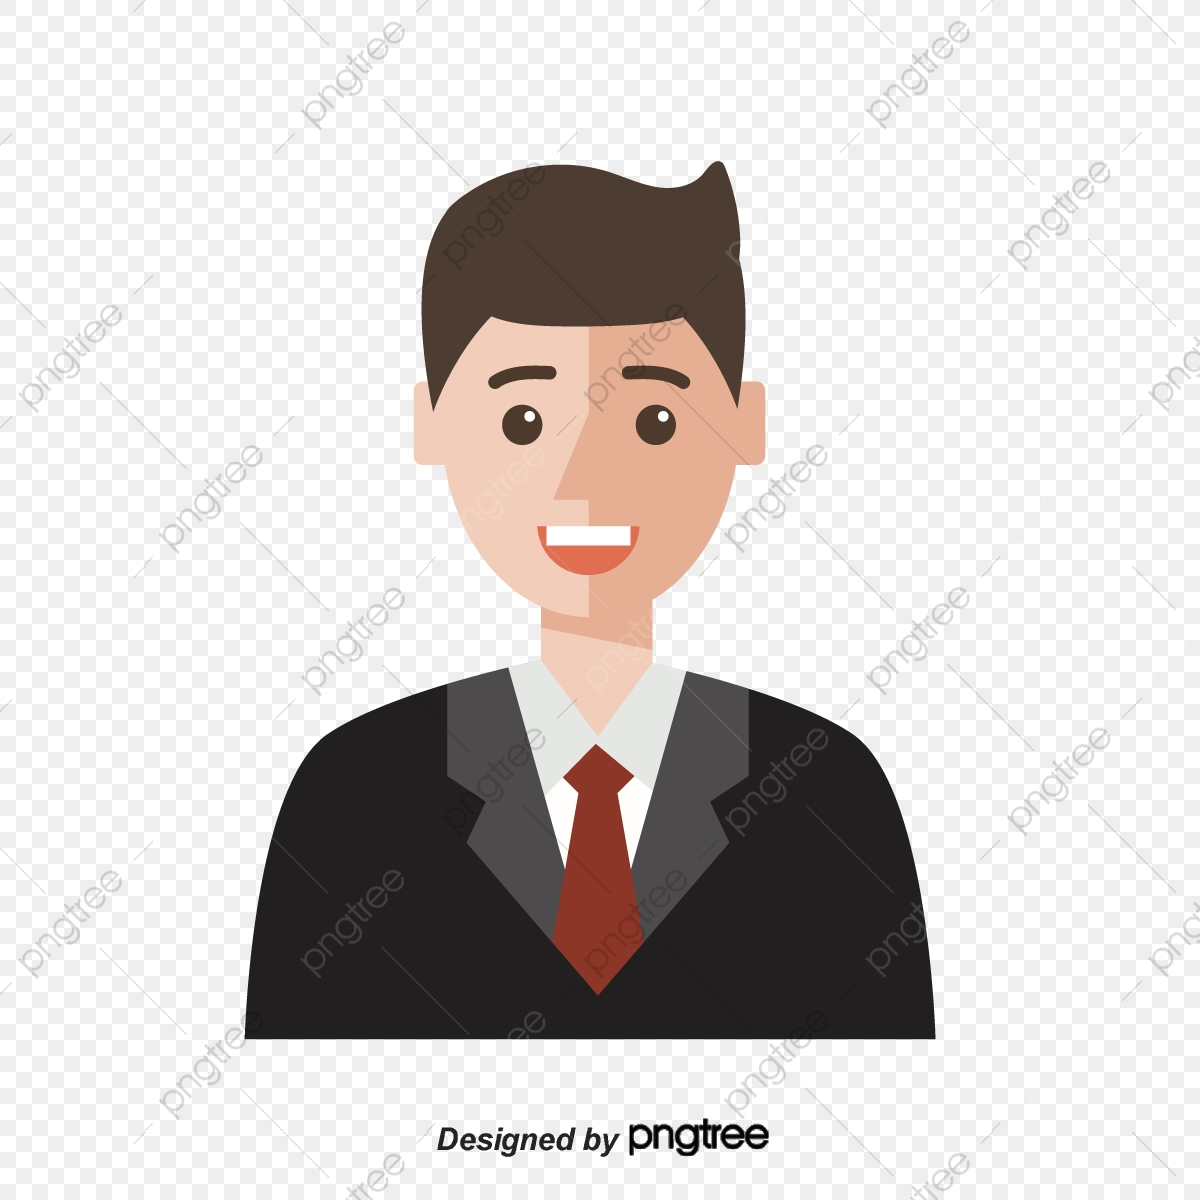 Black Suit Male White Collar Professional Figure Image Character